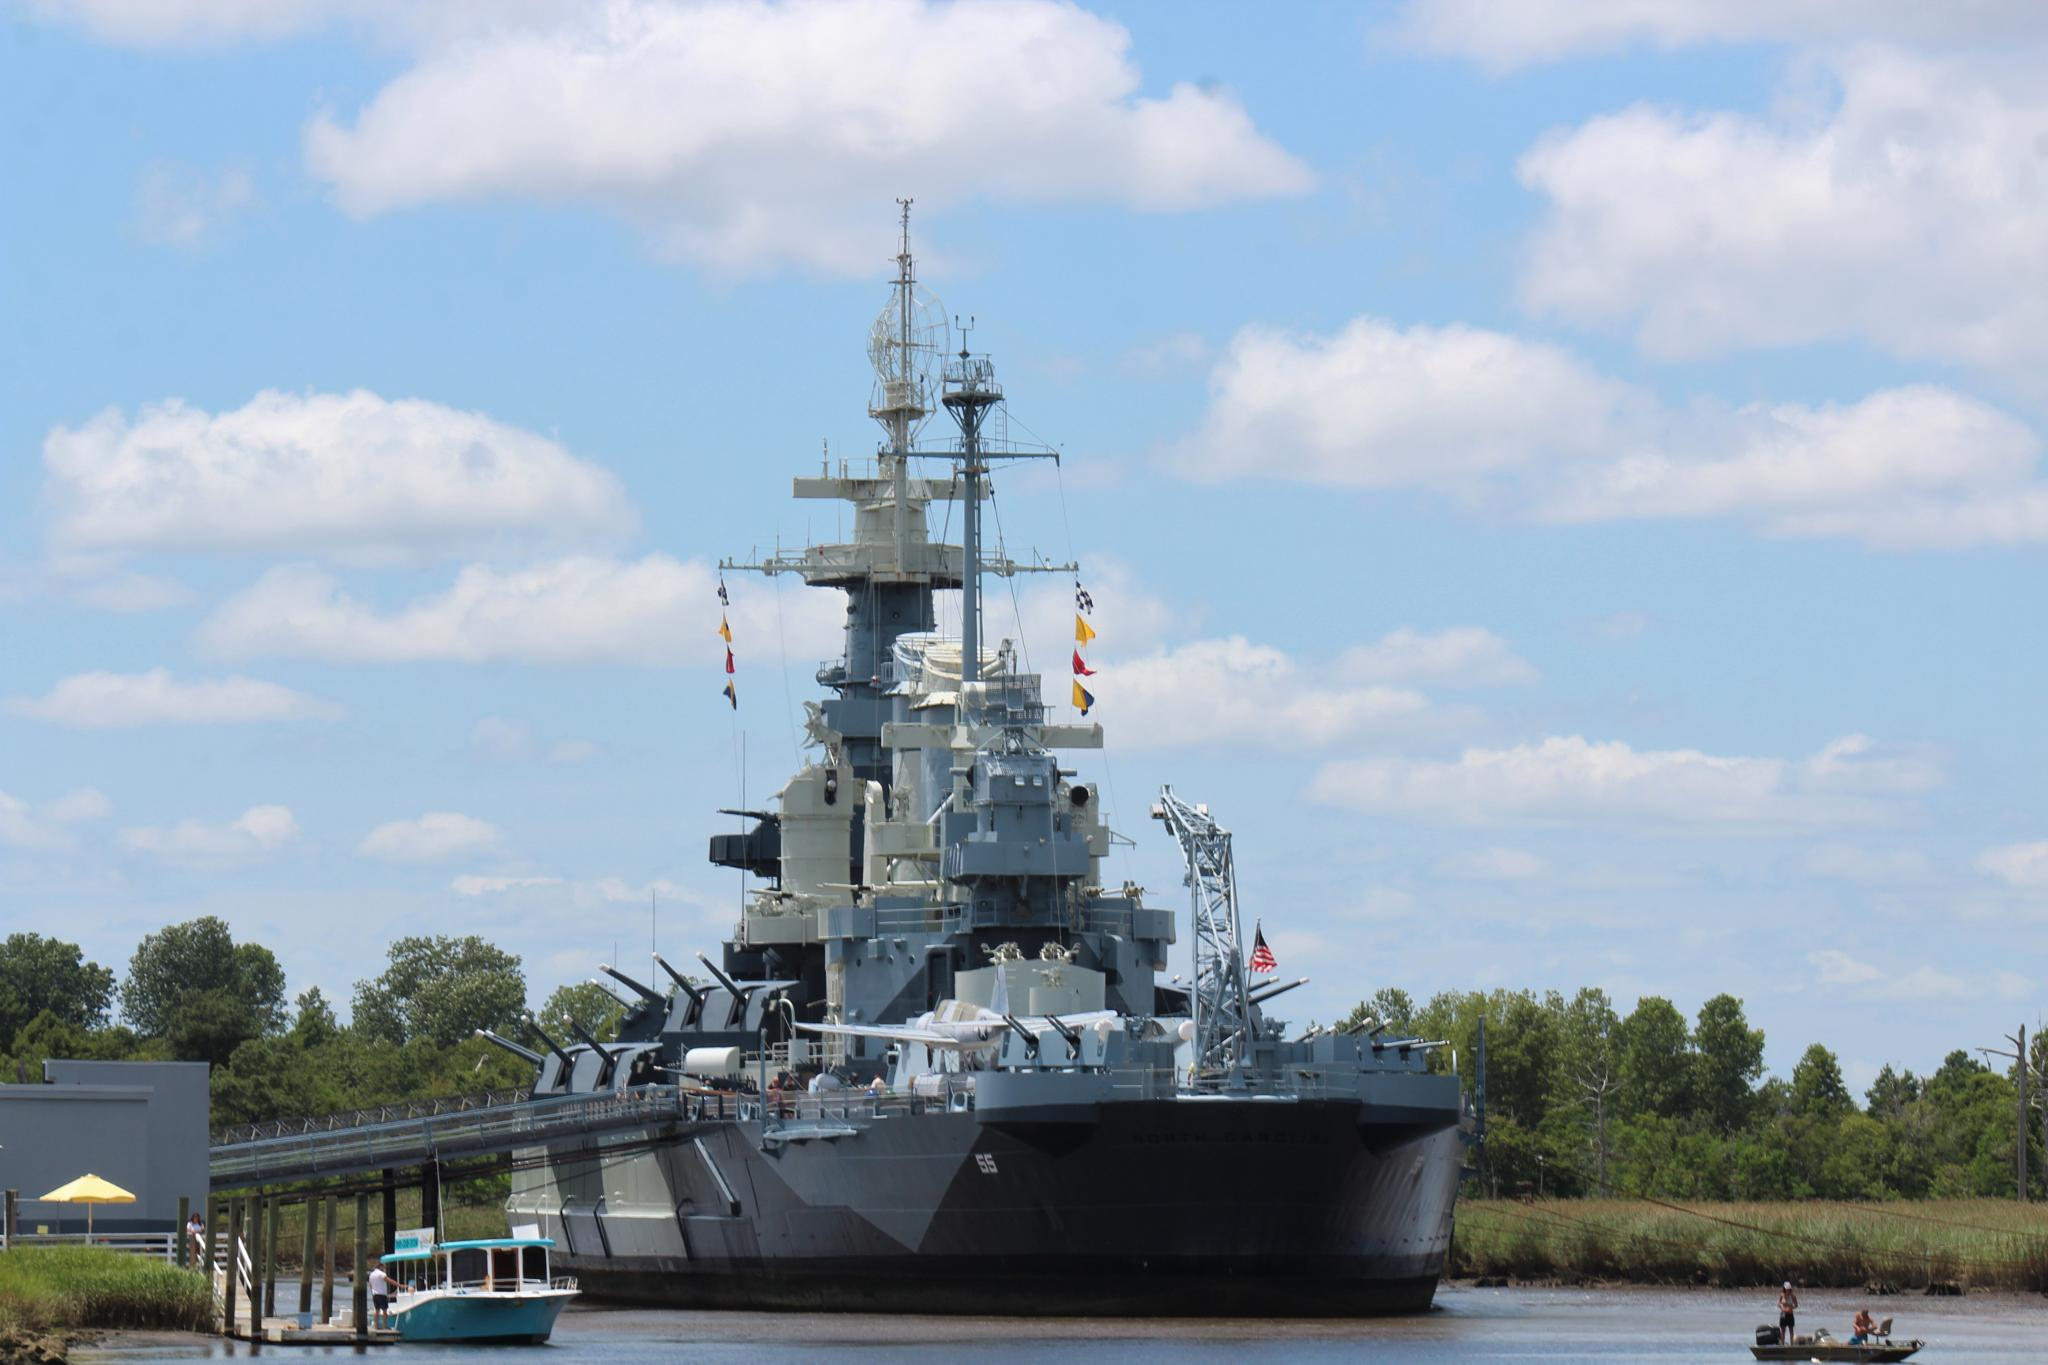 The USS North Carolina by bernice.desmond